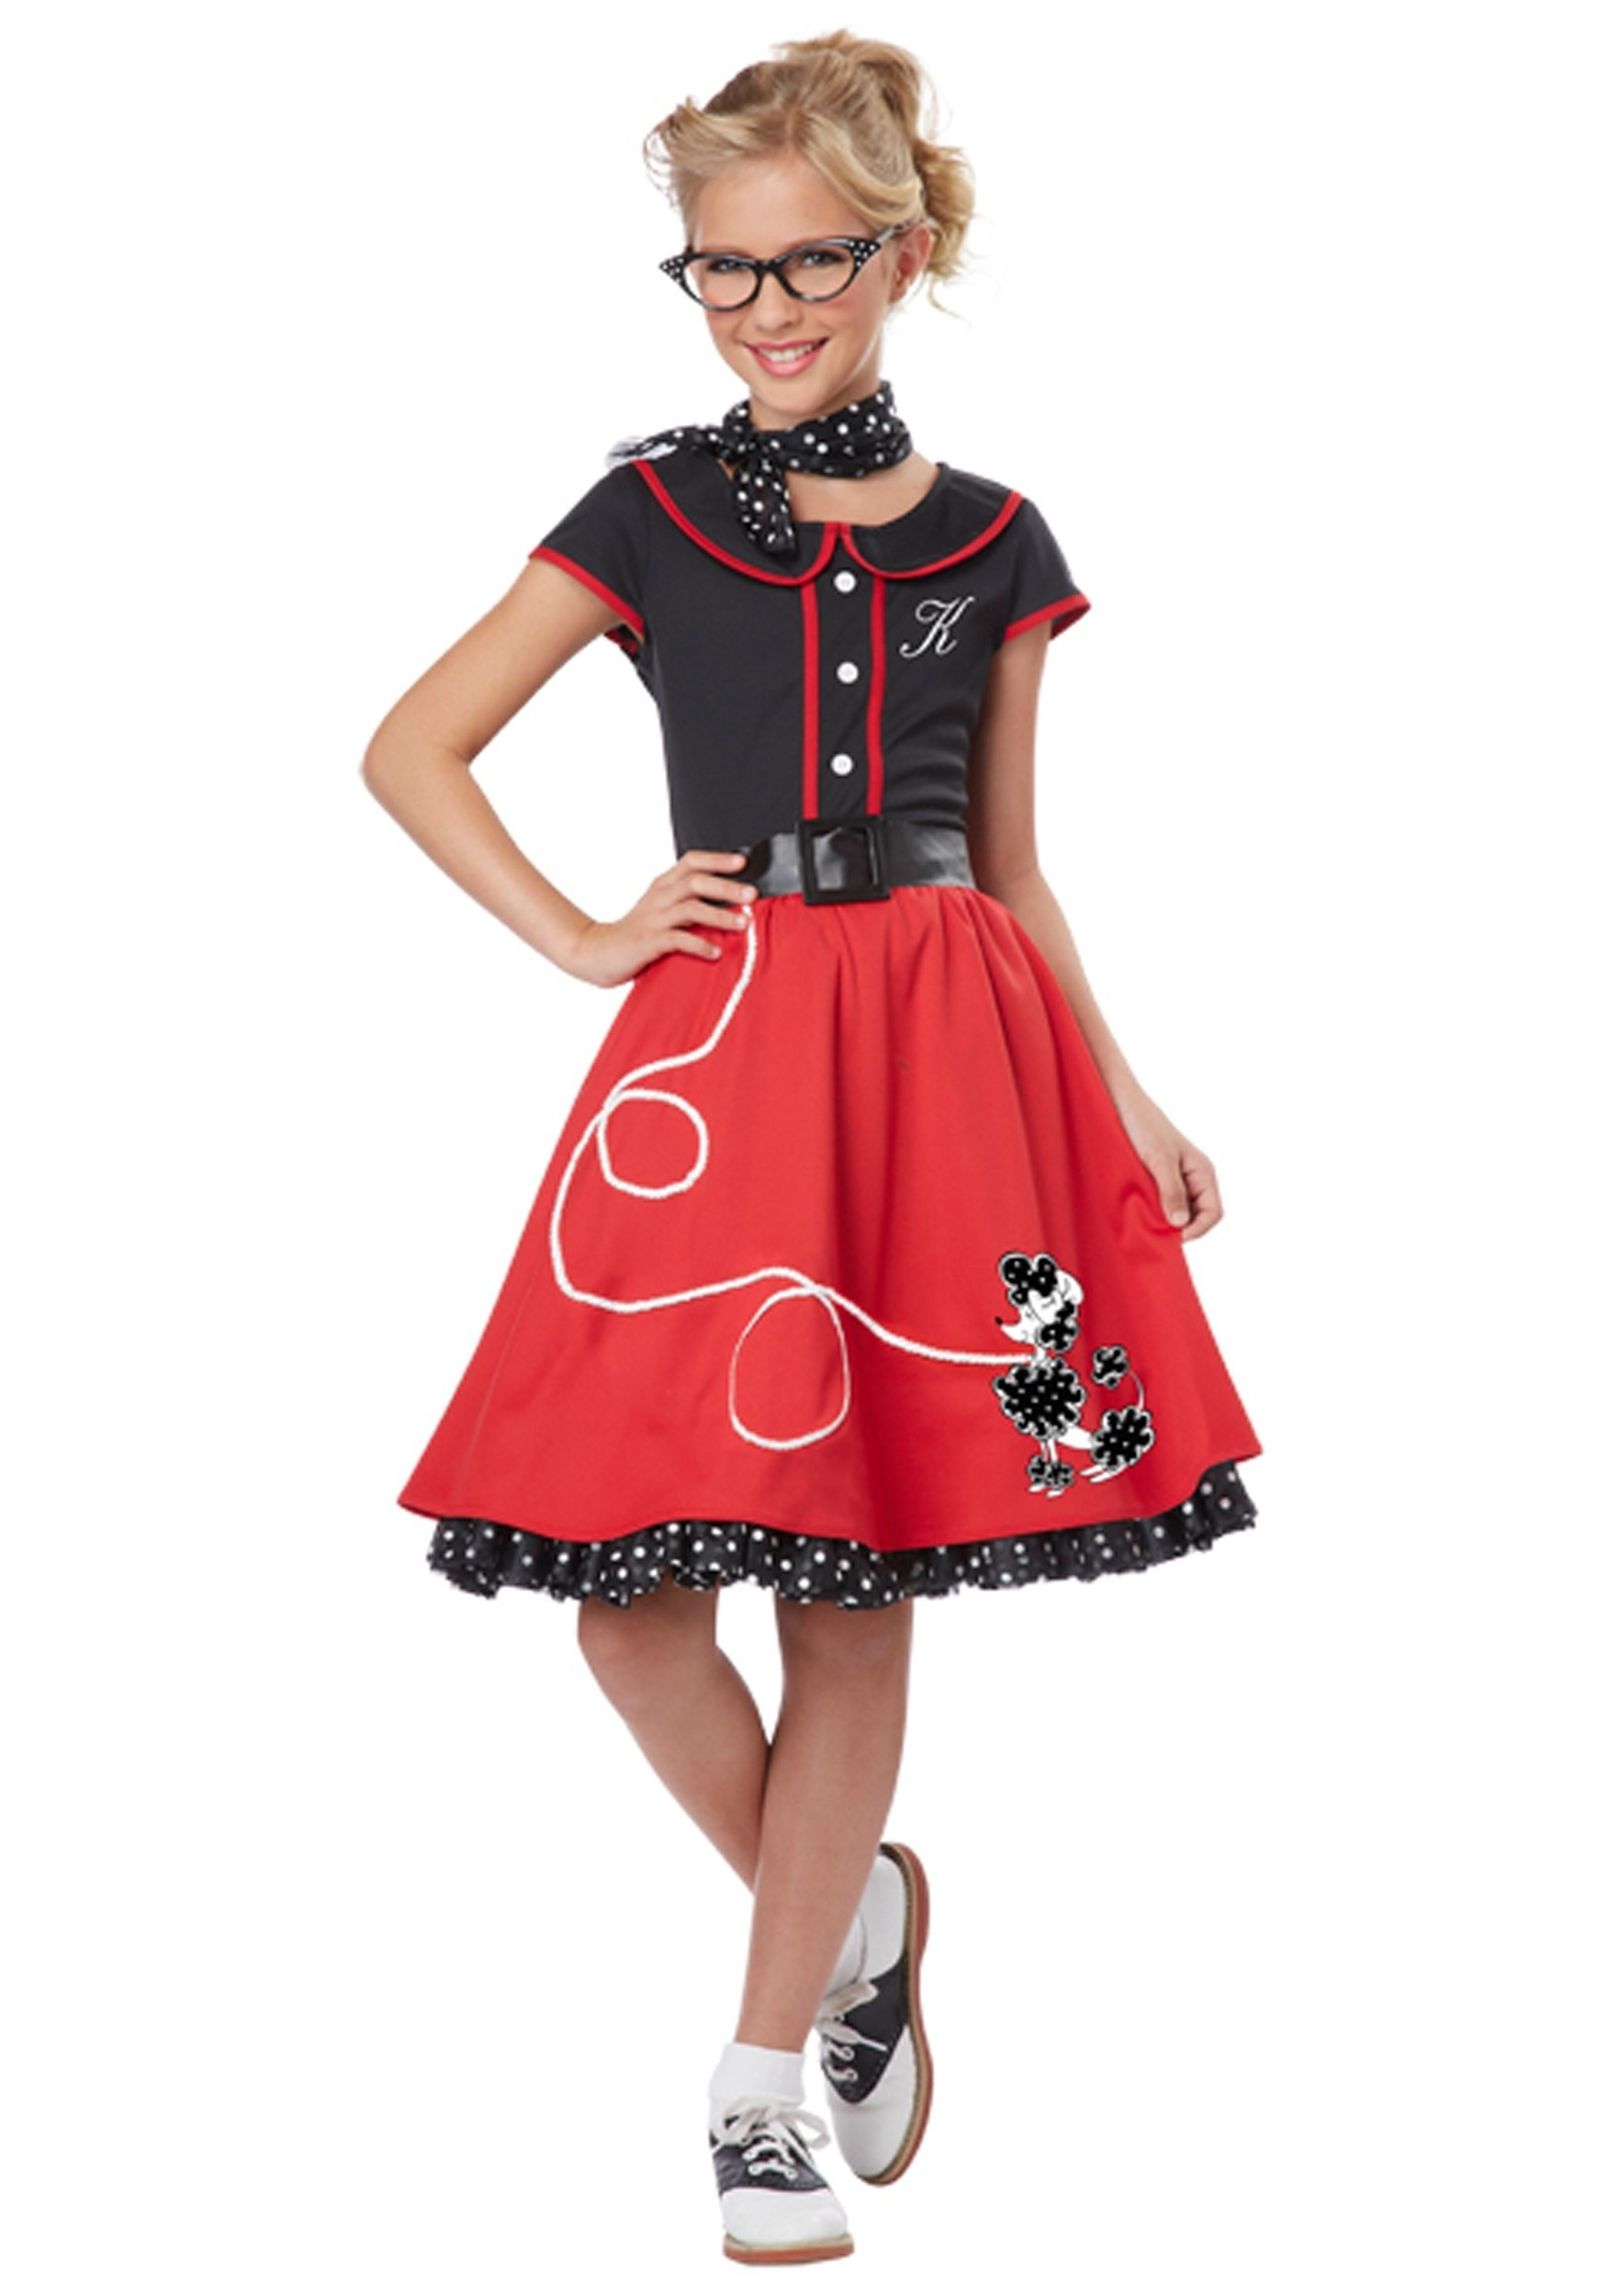 kids 50s costumes, poodle skirts & grease outfits